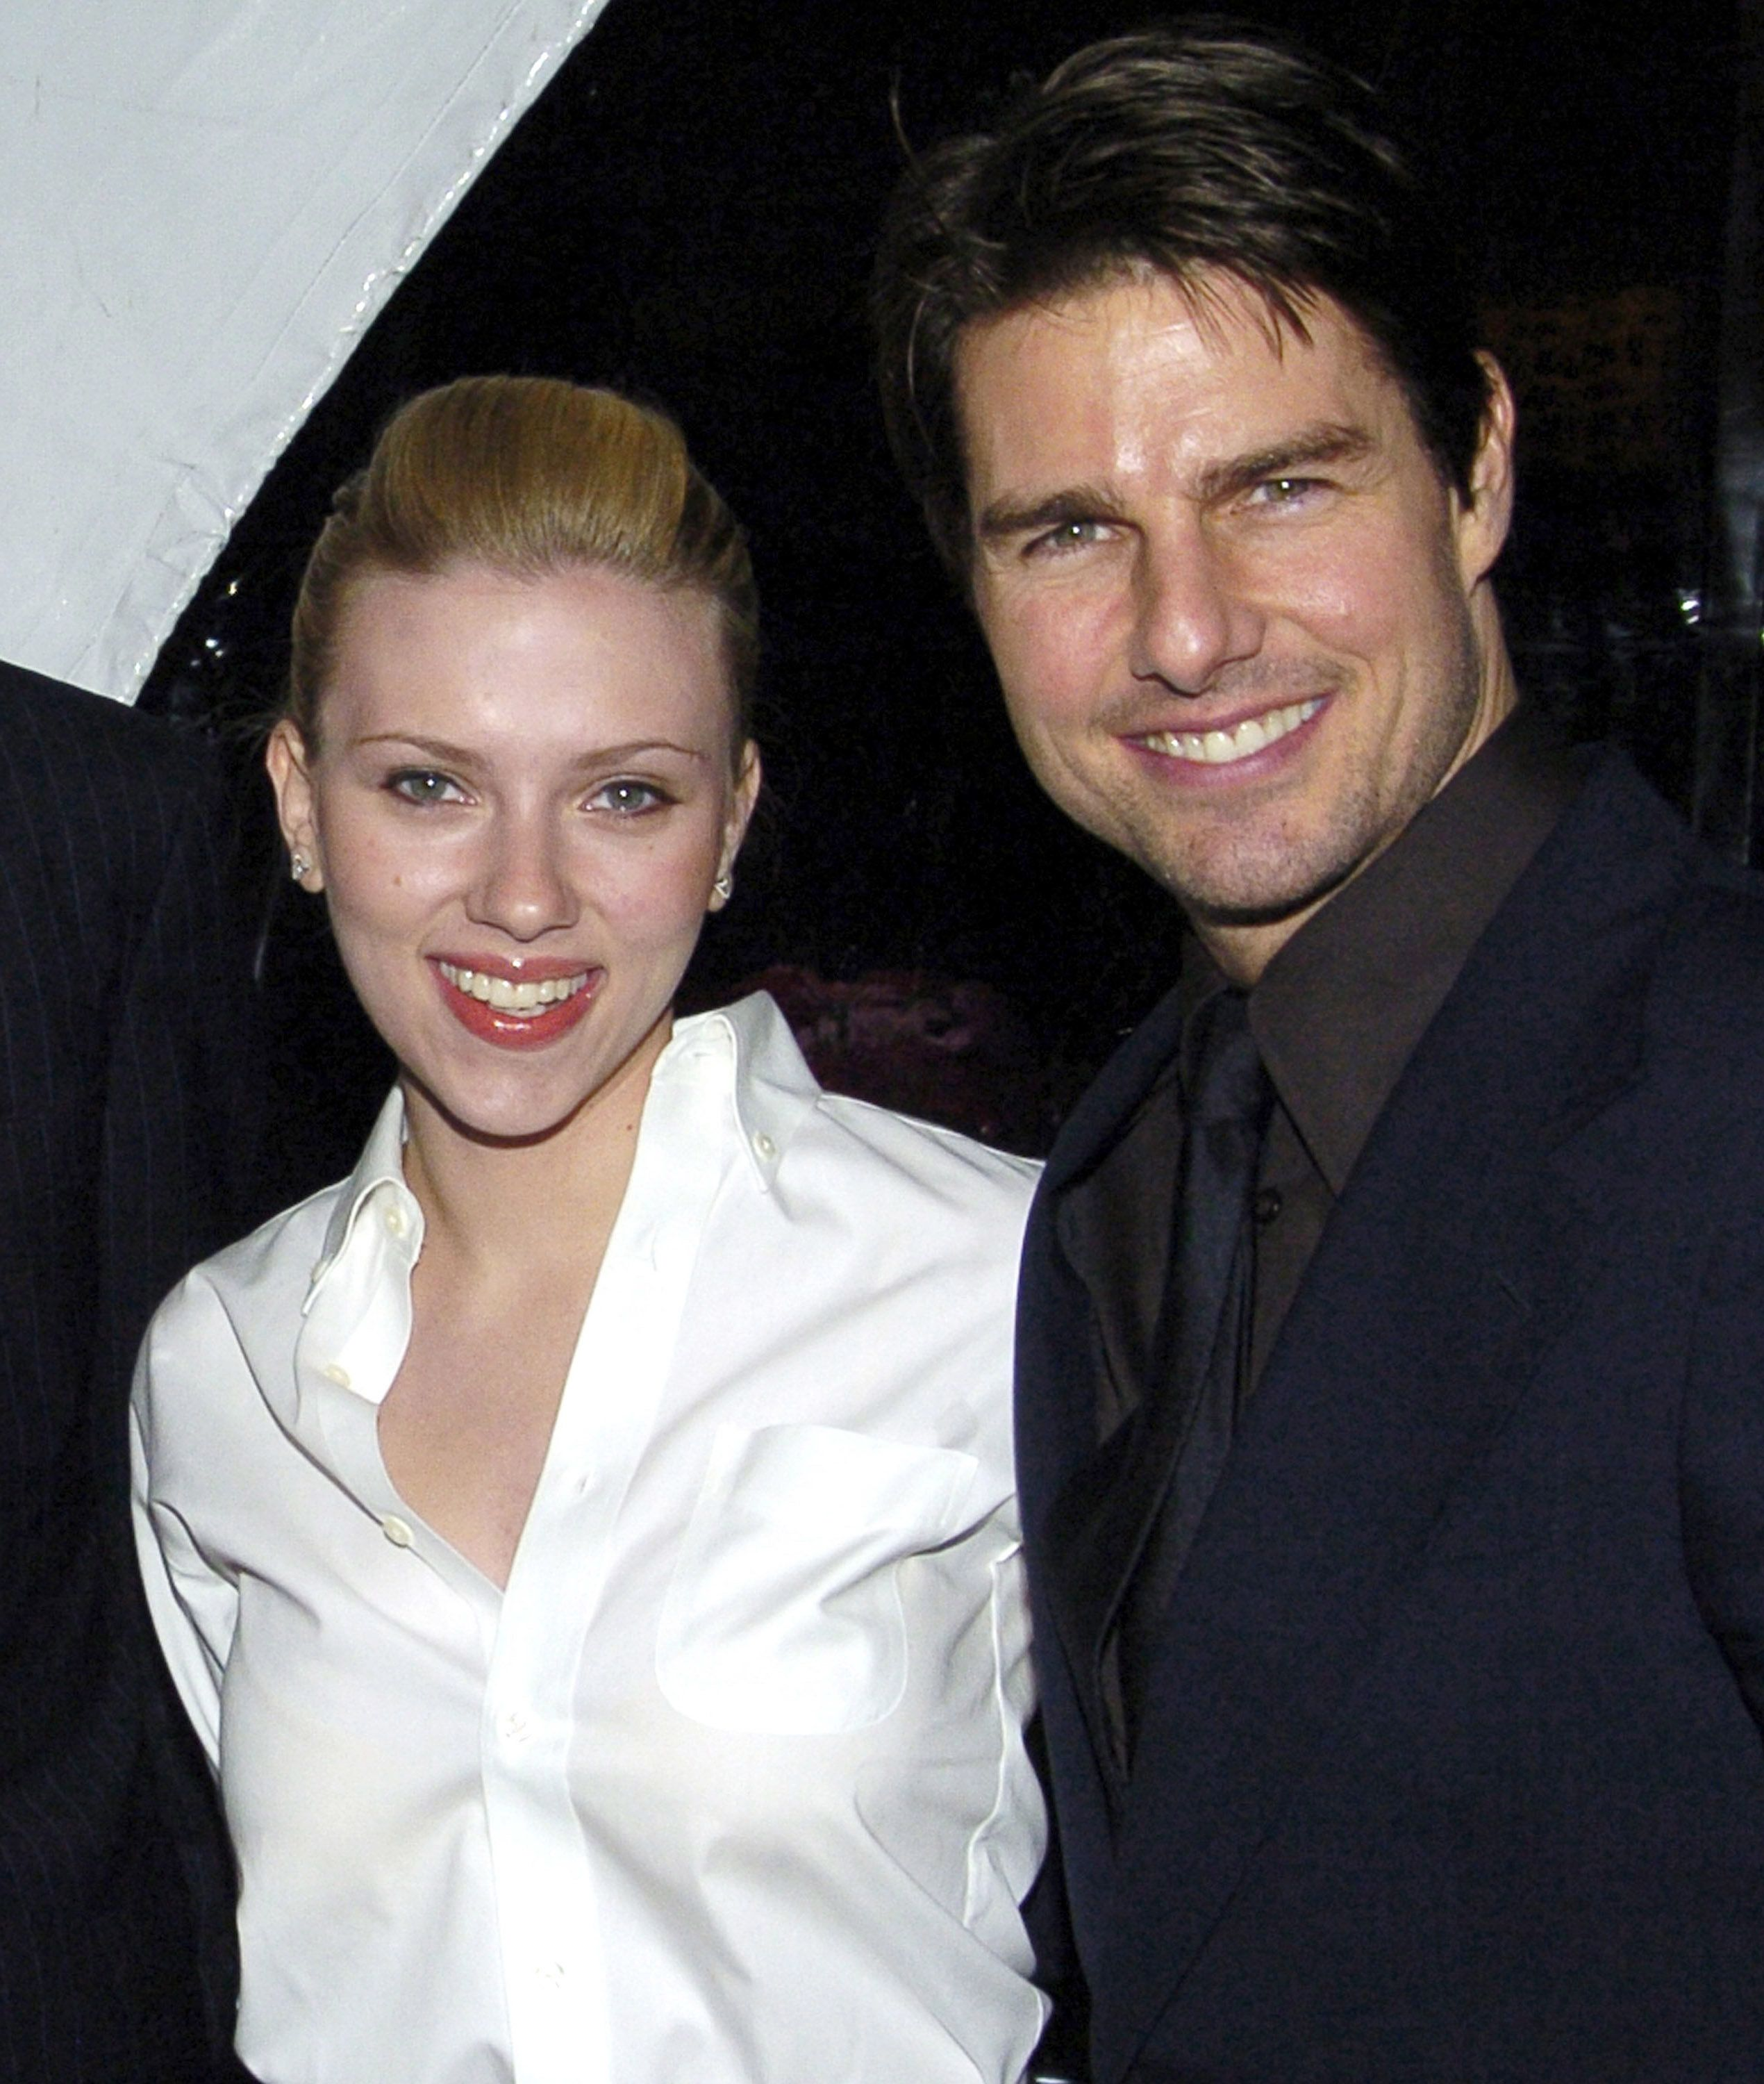 (EXCLUSIVE, Premium Rates Apply) Scarlett Johansson and Tom Cruise  **exclusive** (Photo by Jeff Kravitz/FilmMagic)